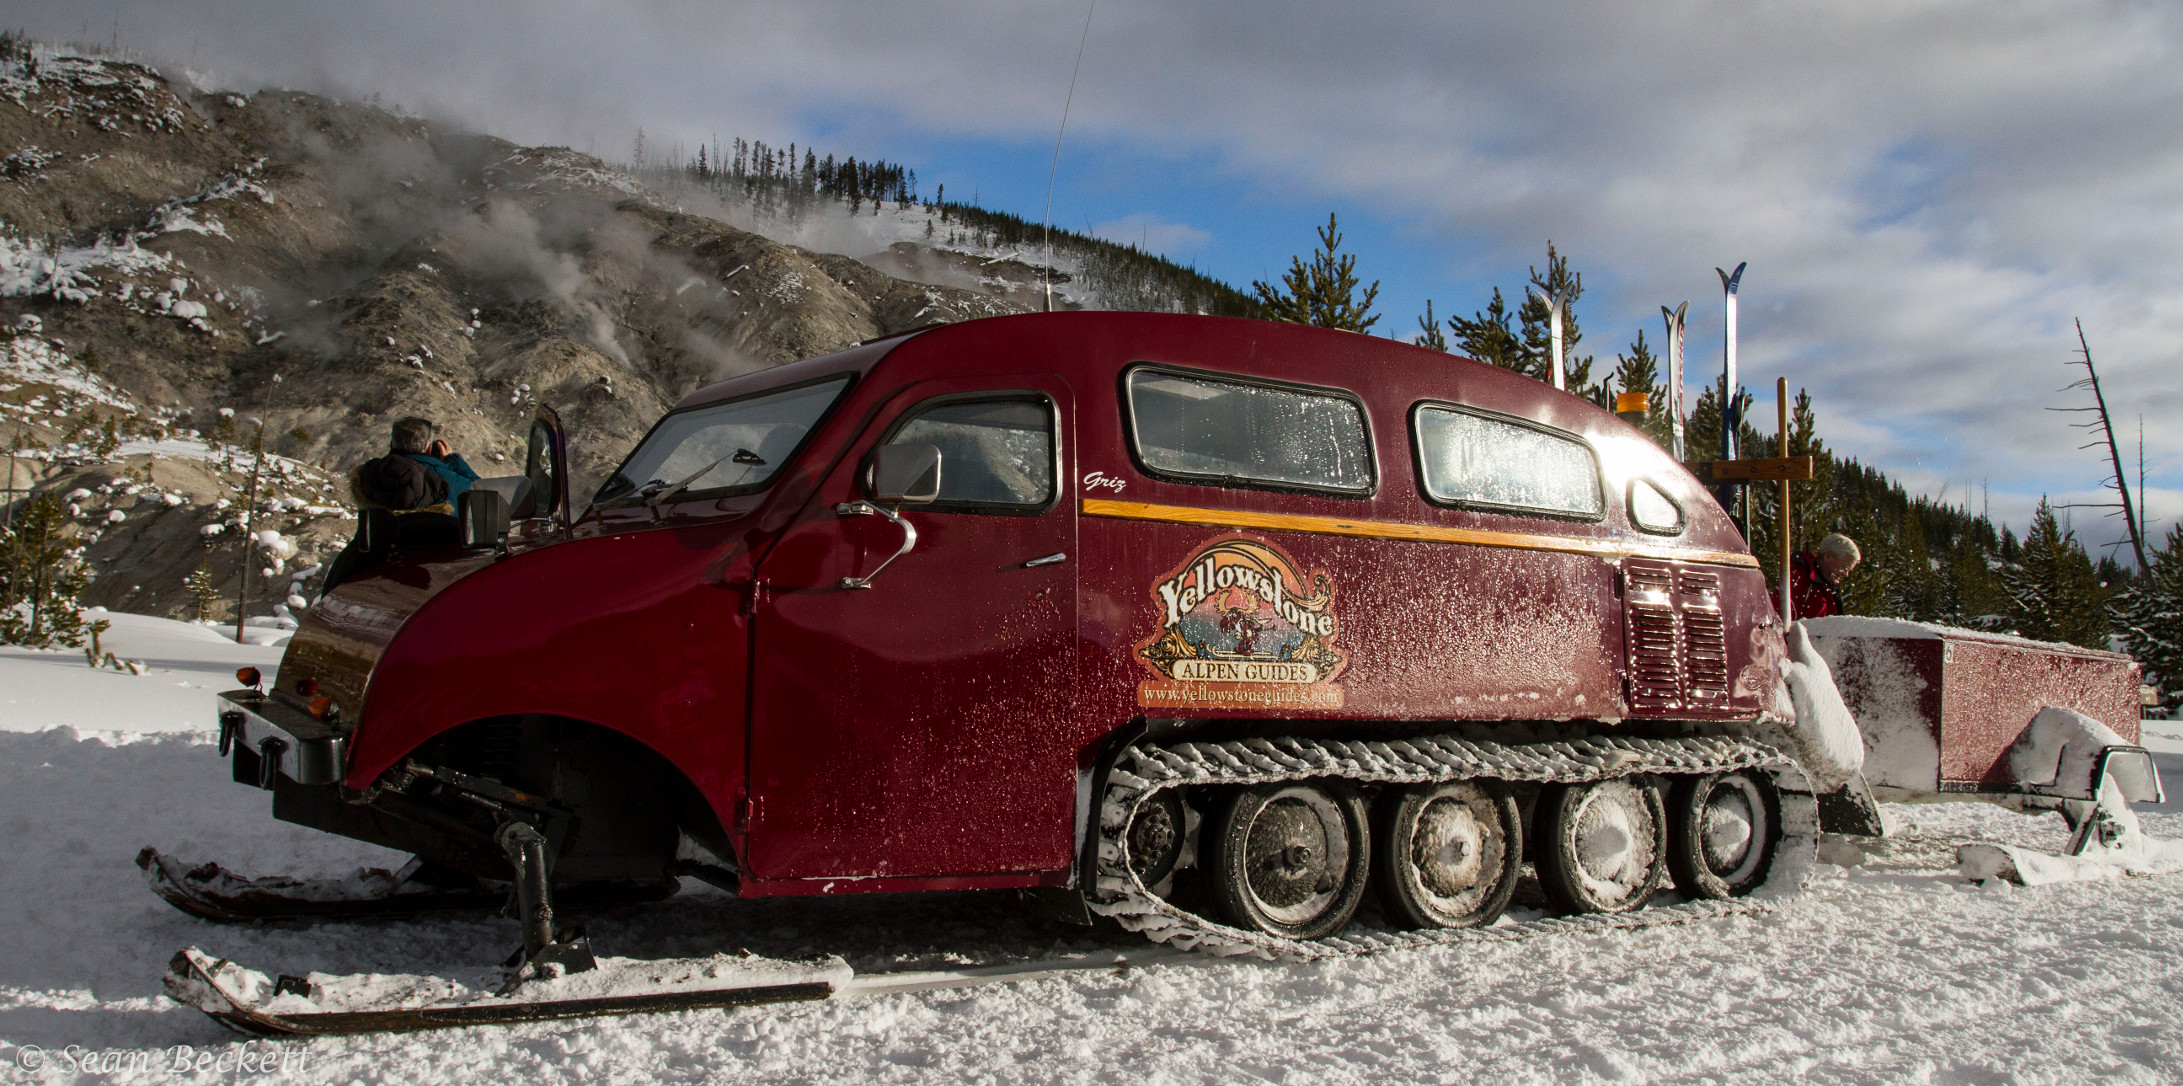 A later model Bombardier Snowmobile with the rectangular windows, in use in Yellowstone National Park. (Picture courtesy goodnature.nathab.com)